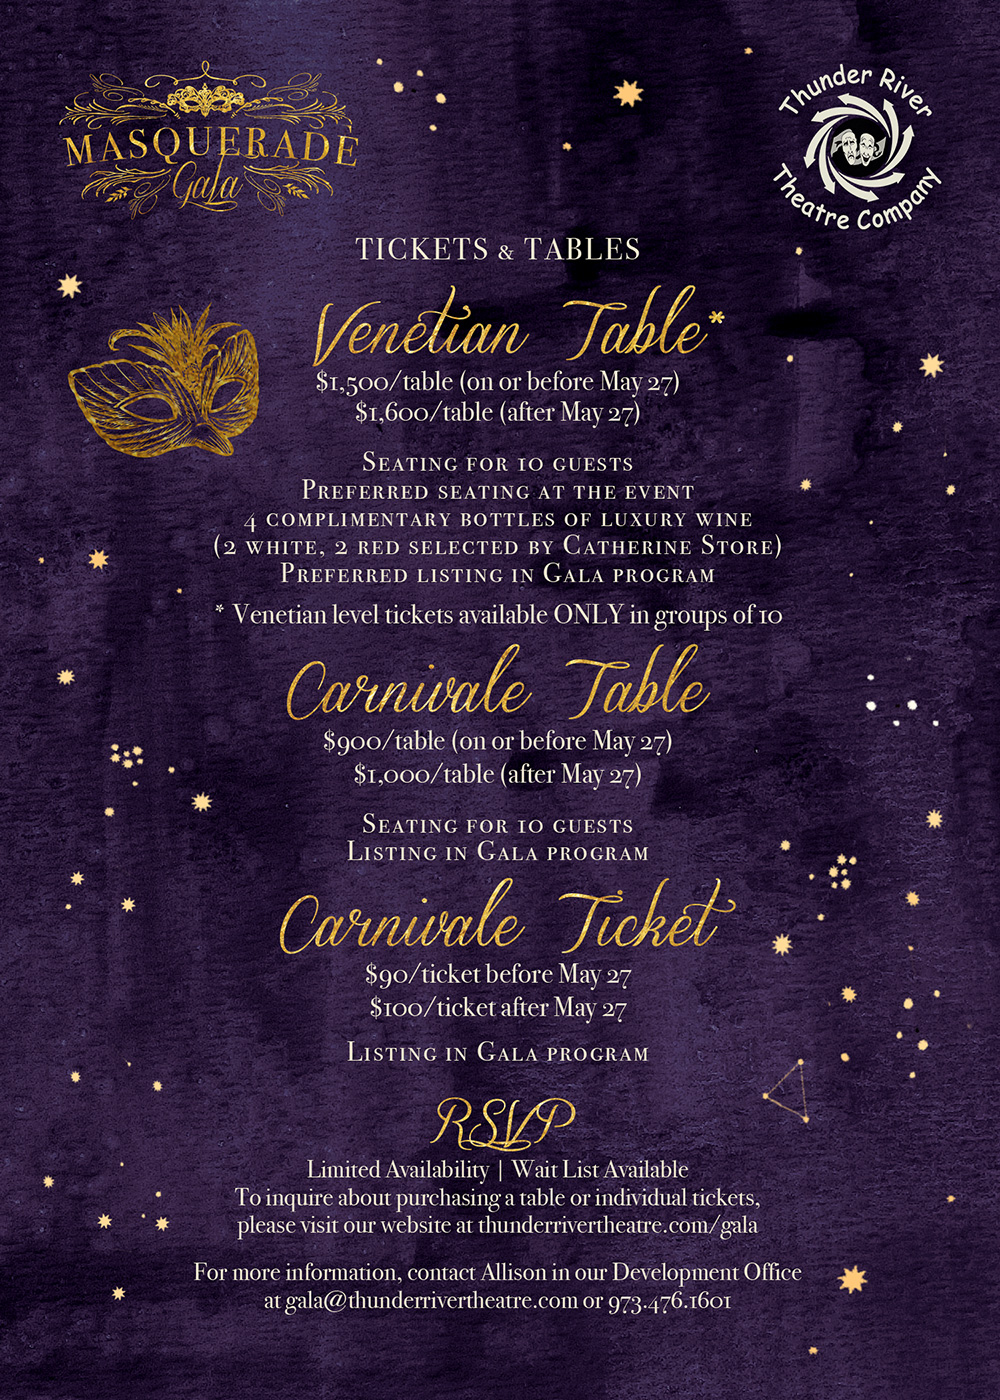 Ticket and Table Options